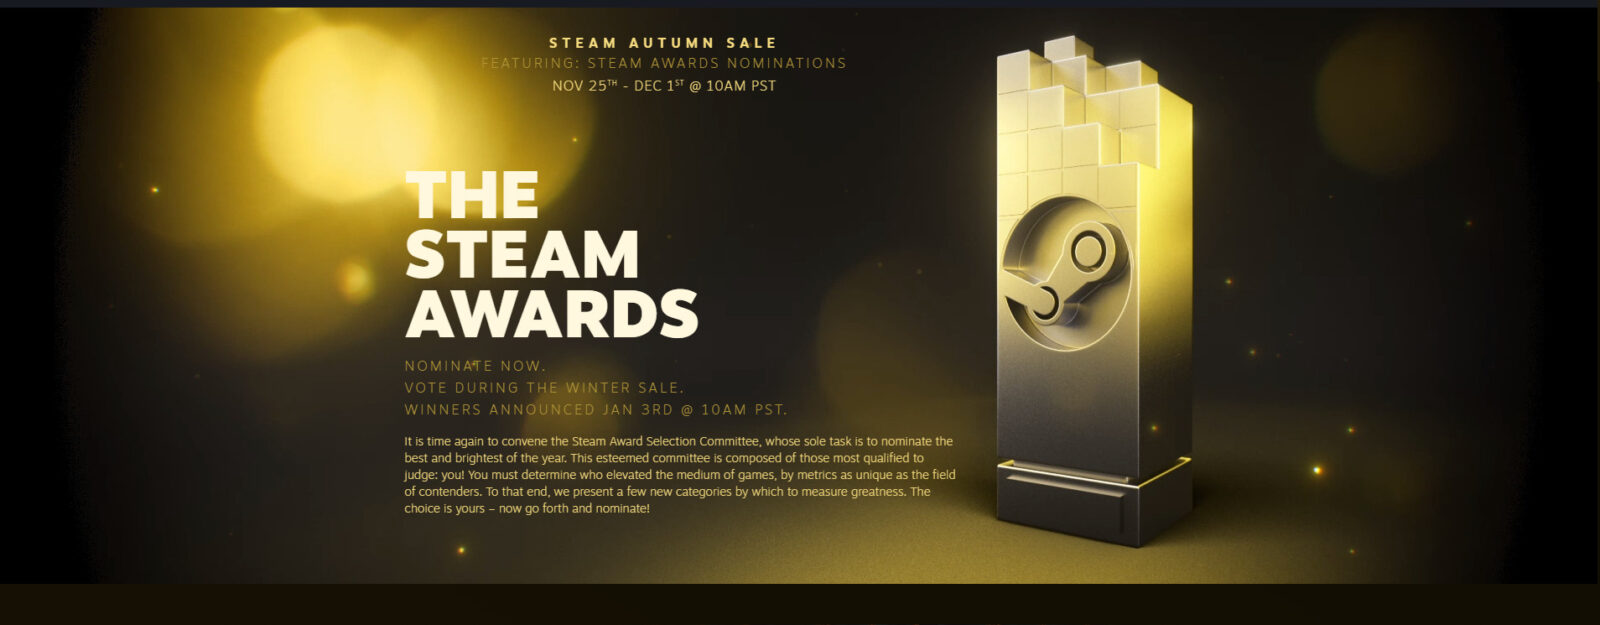 The Steam Awards Once Again Offer A Strange Look Into The Consumers Understanding Of Video Games